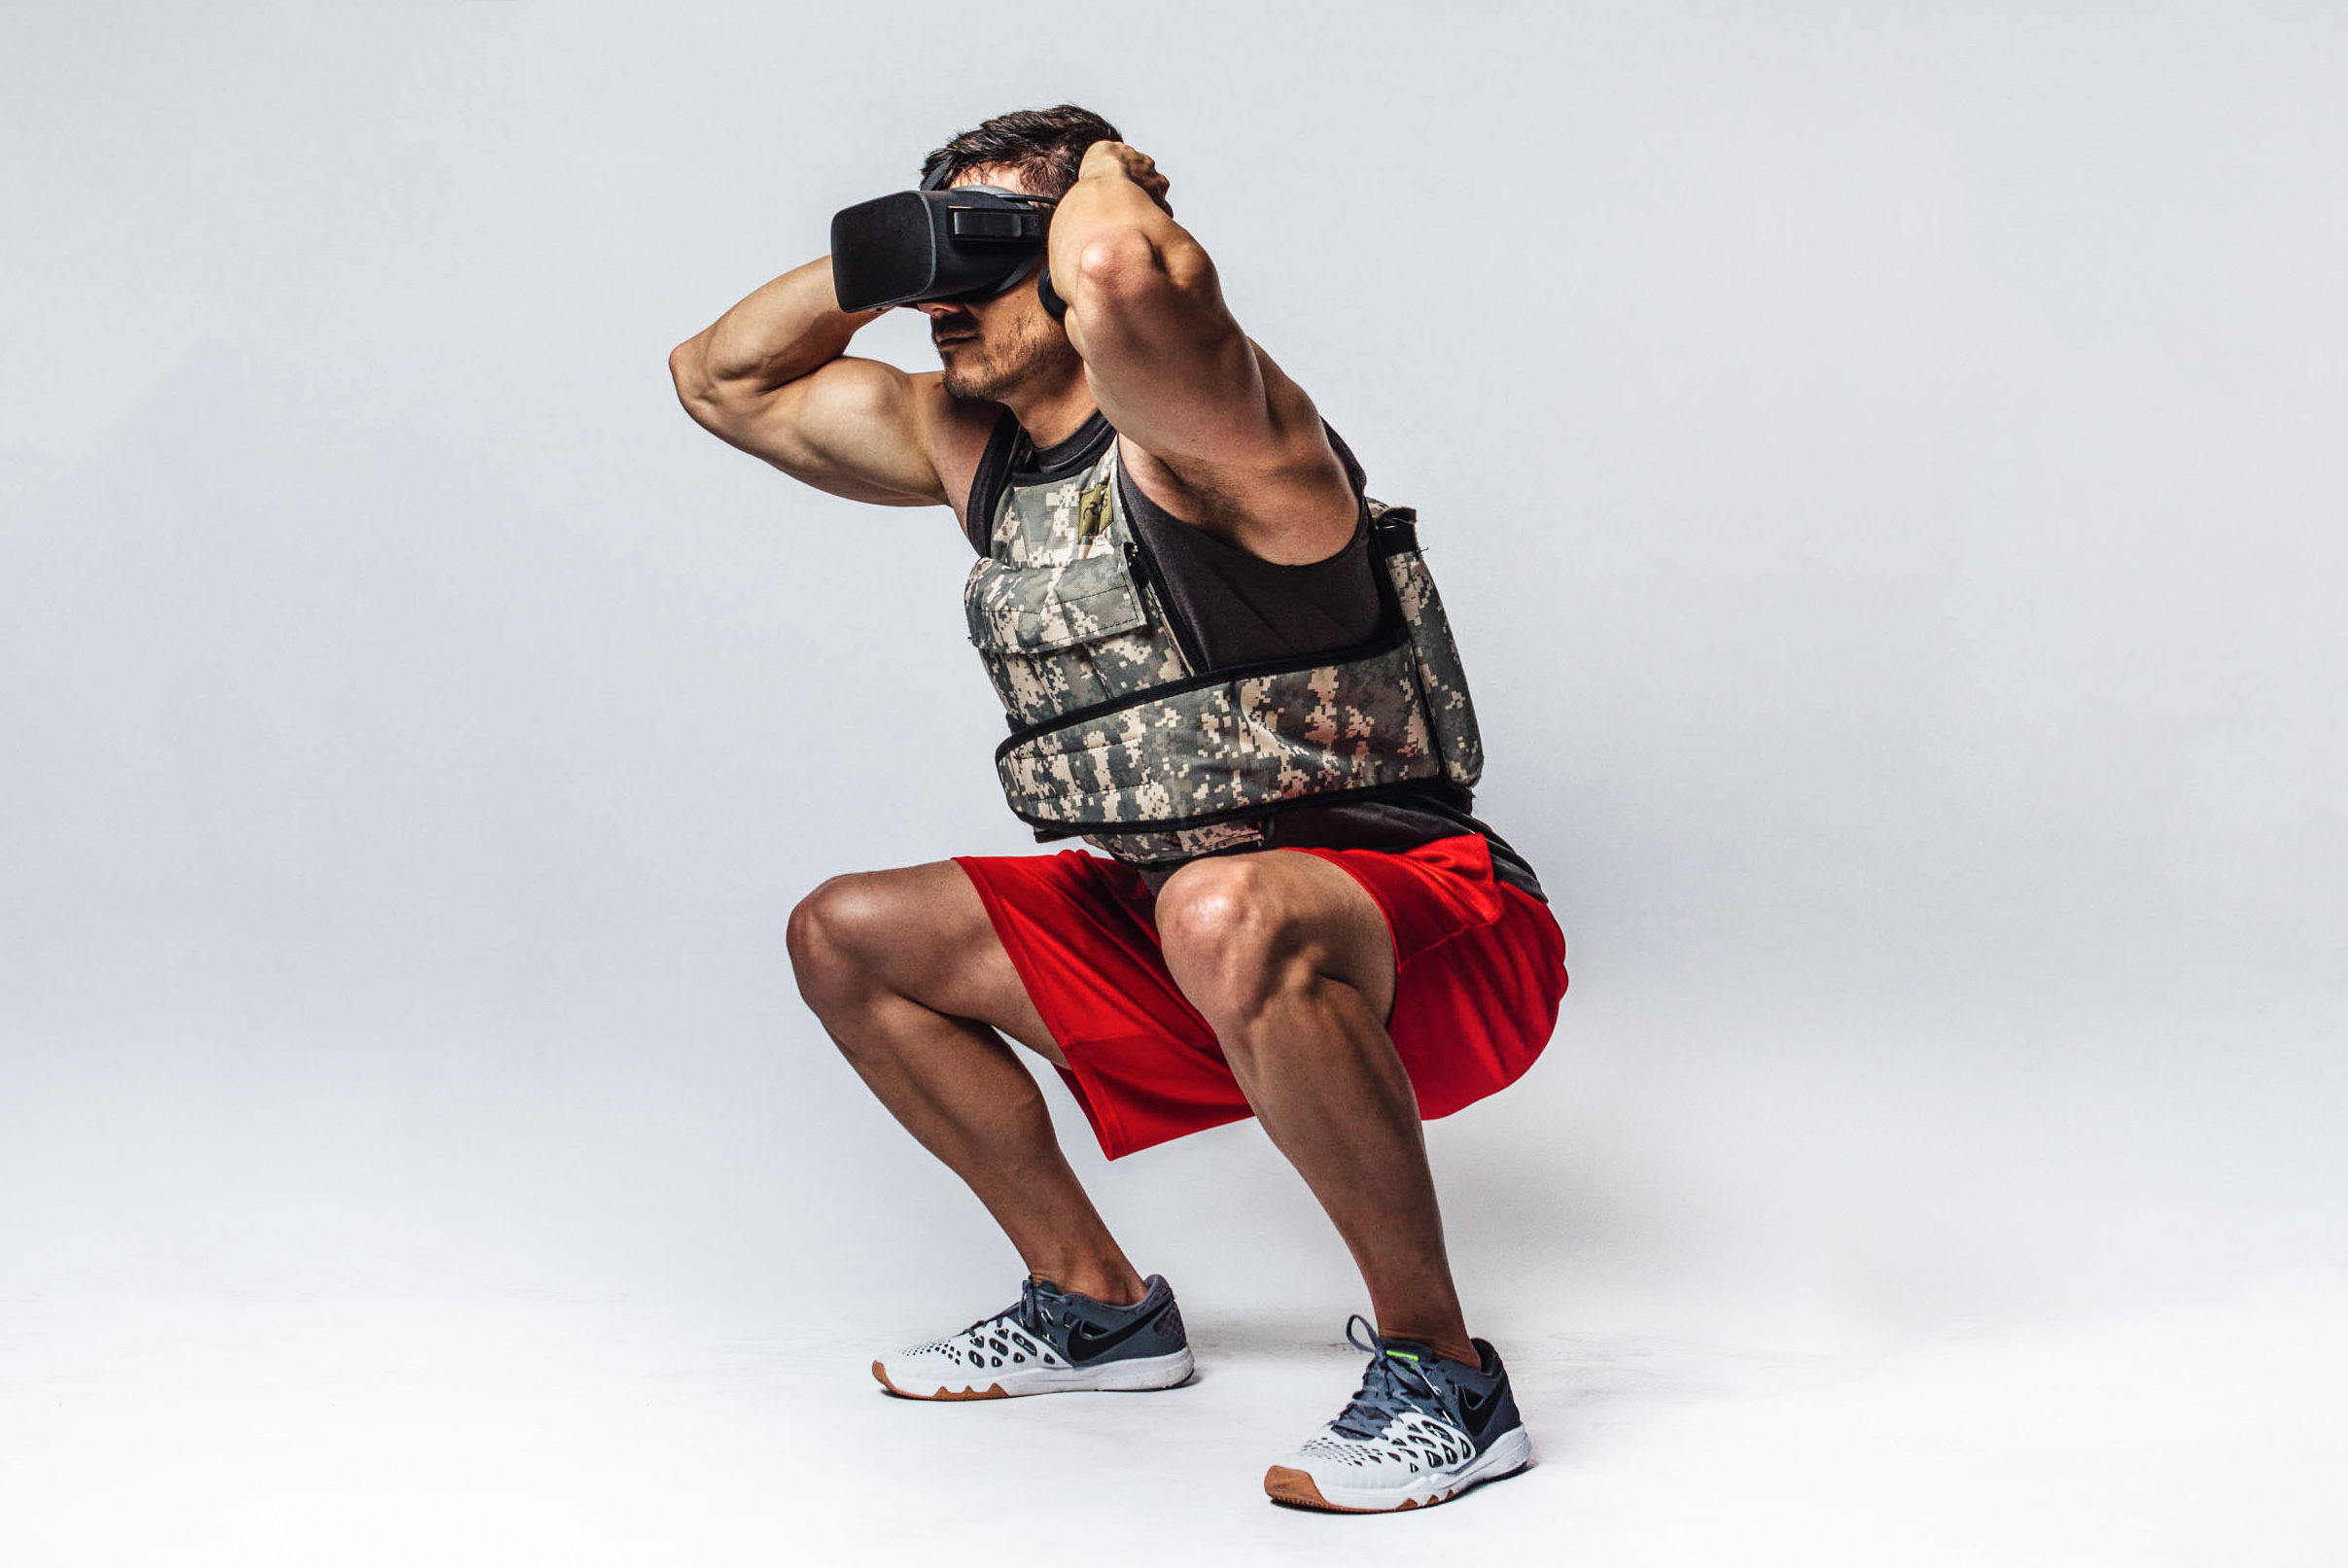 Top 15 Best Vr Fitness Games For A Total Body Workout